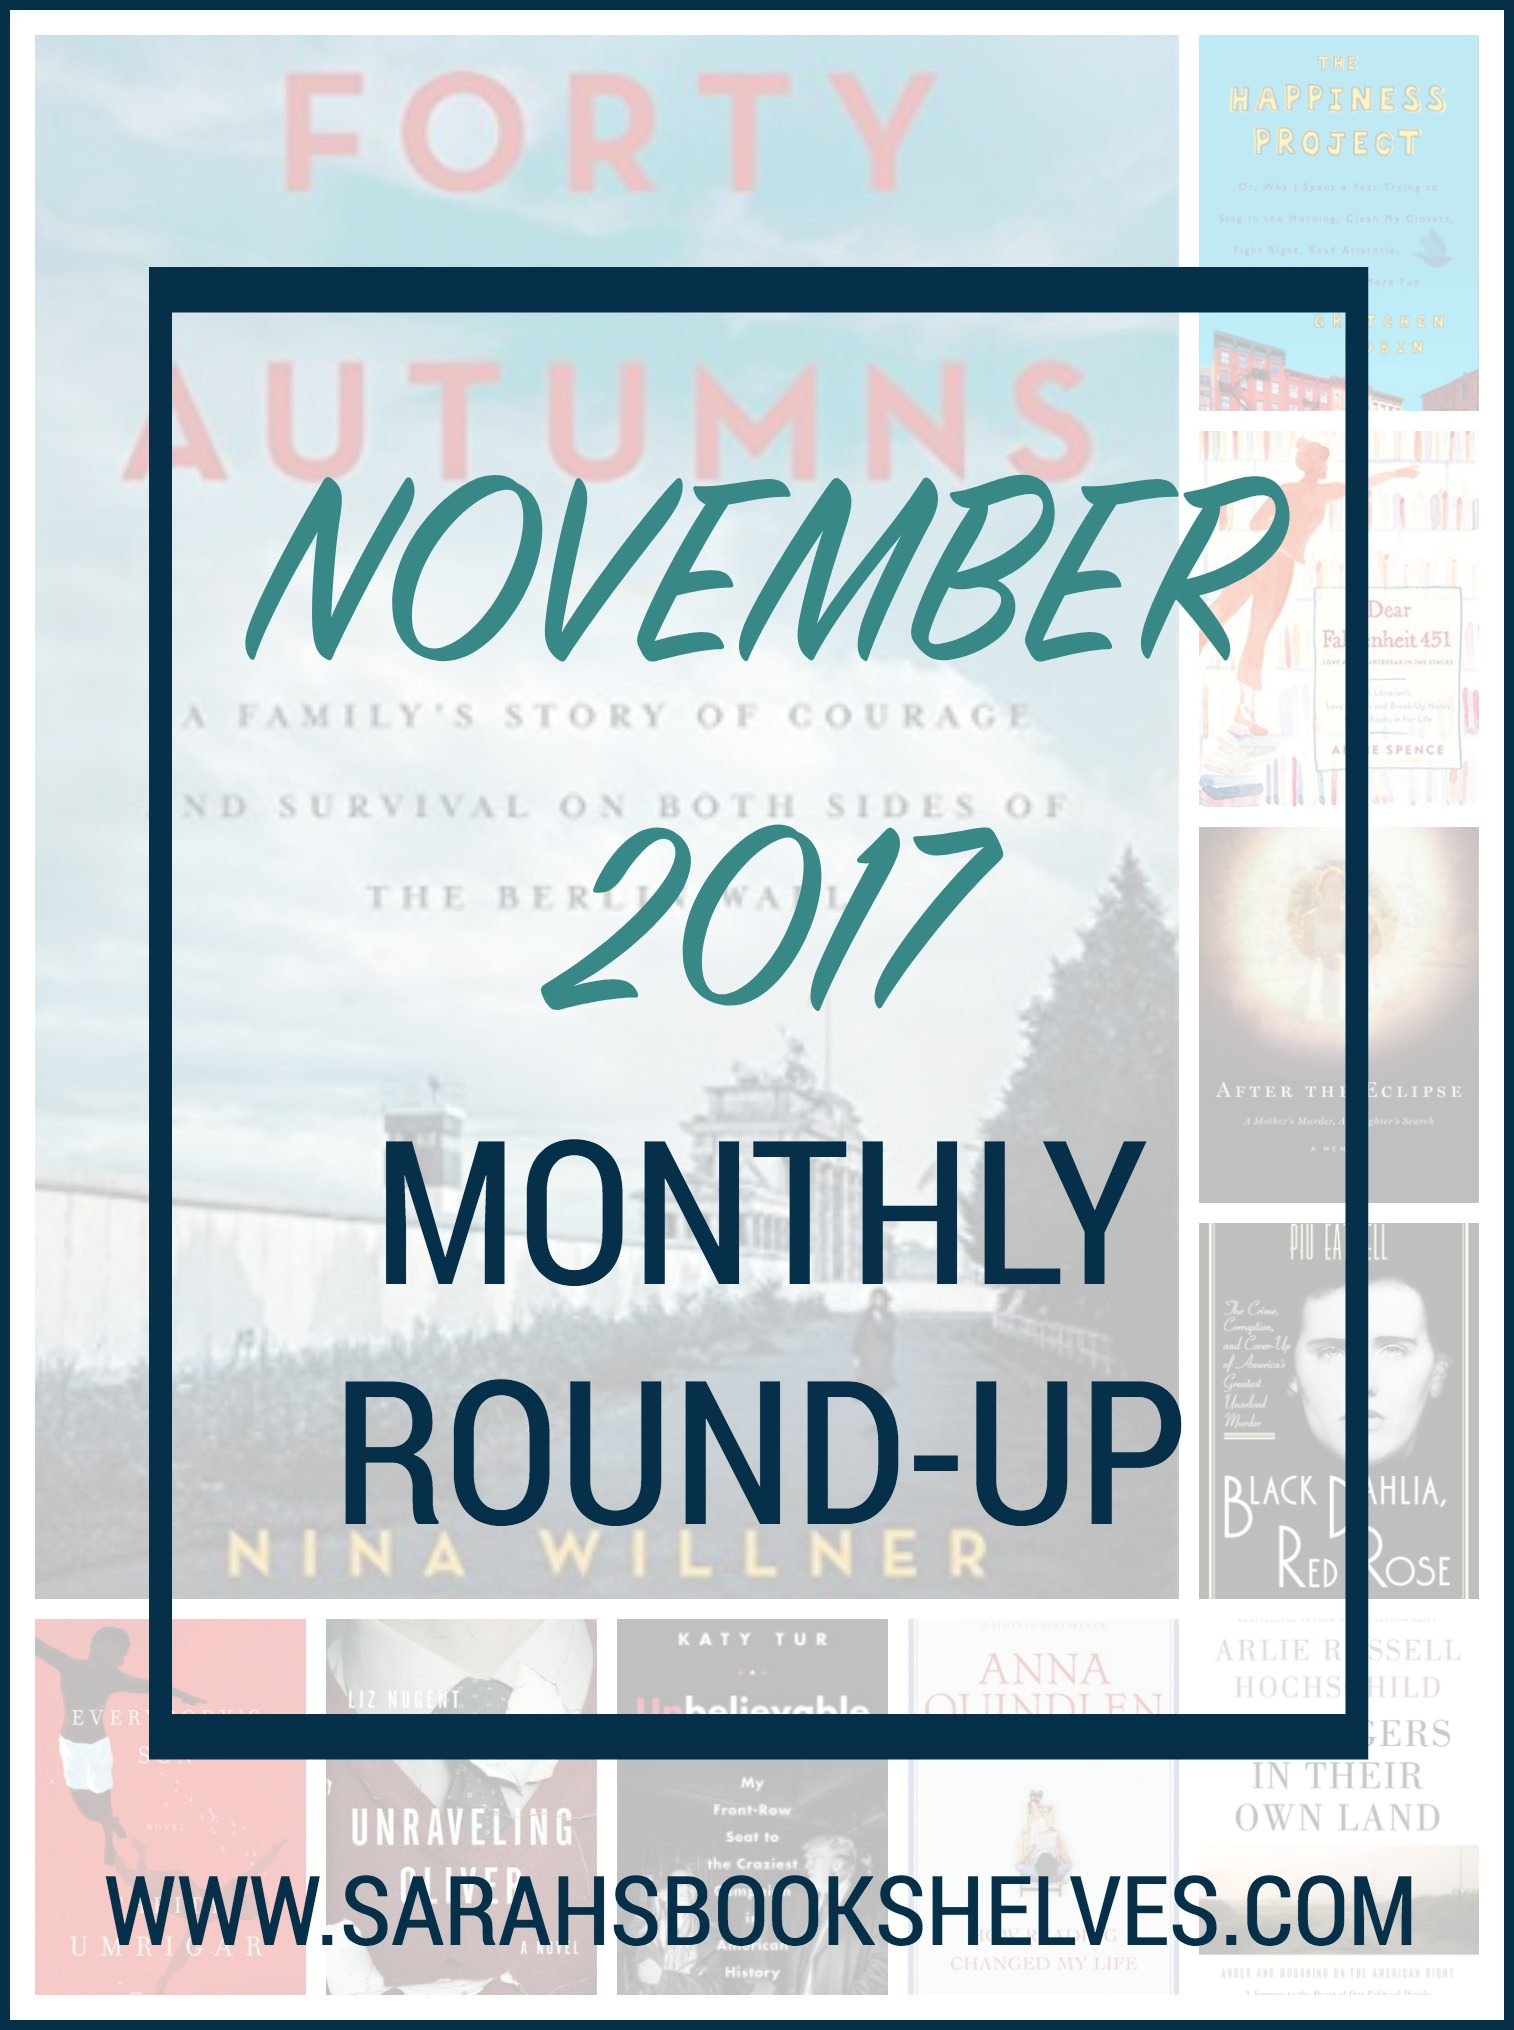 November 2017 Monthly Round-Up: all about nonfiction for Nonfiction November! Plus, a couple novels to mix things up. #reading #bookreviewblog #book #bookish #bookworms #booklovers